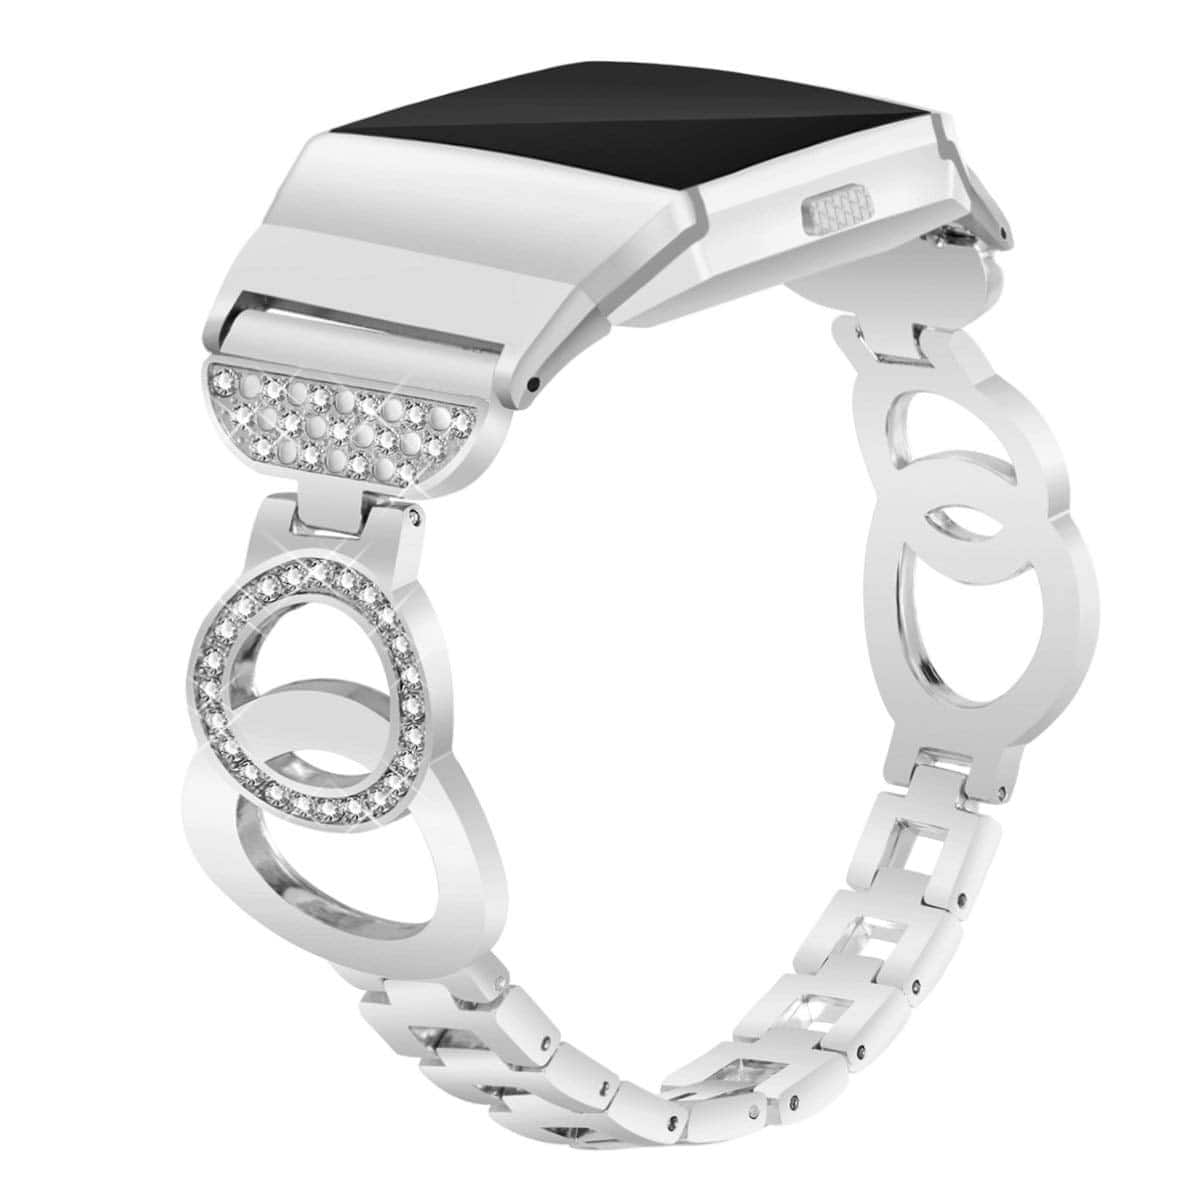 VOMA Stainless Steel Metal Replacement Strap Accessories Band for Fitbit $9.99